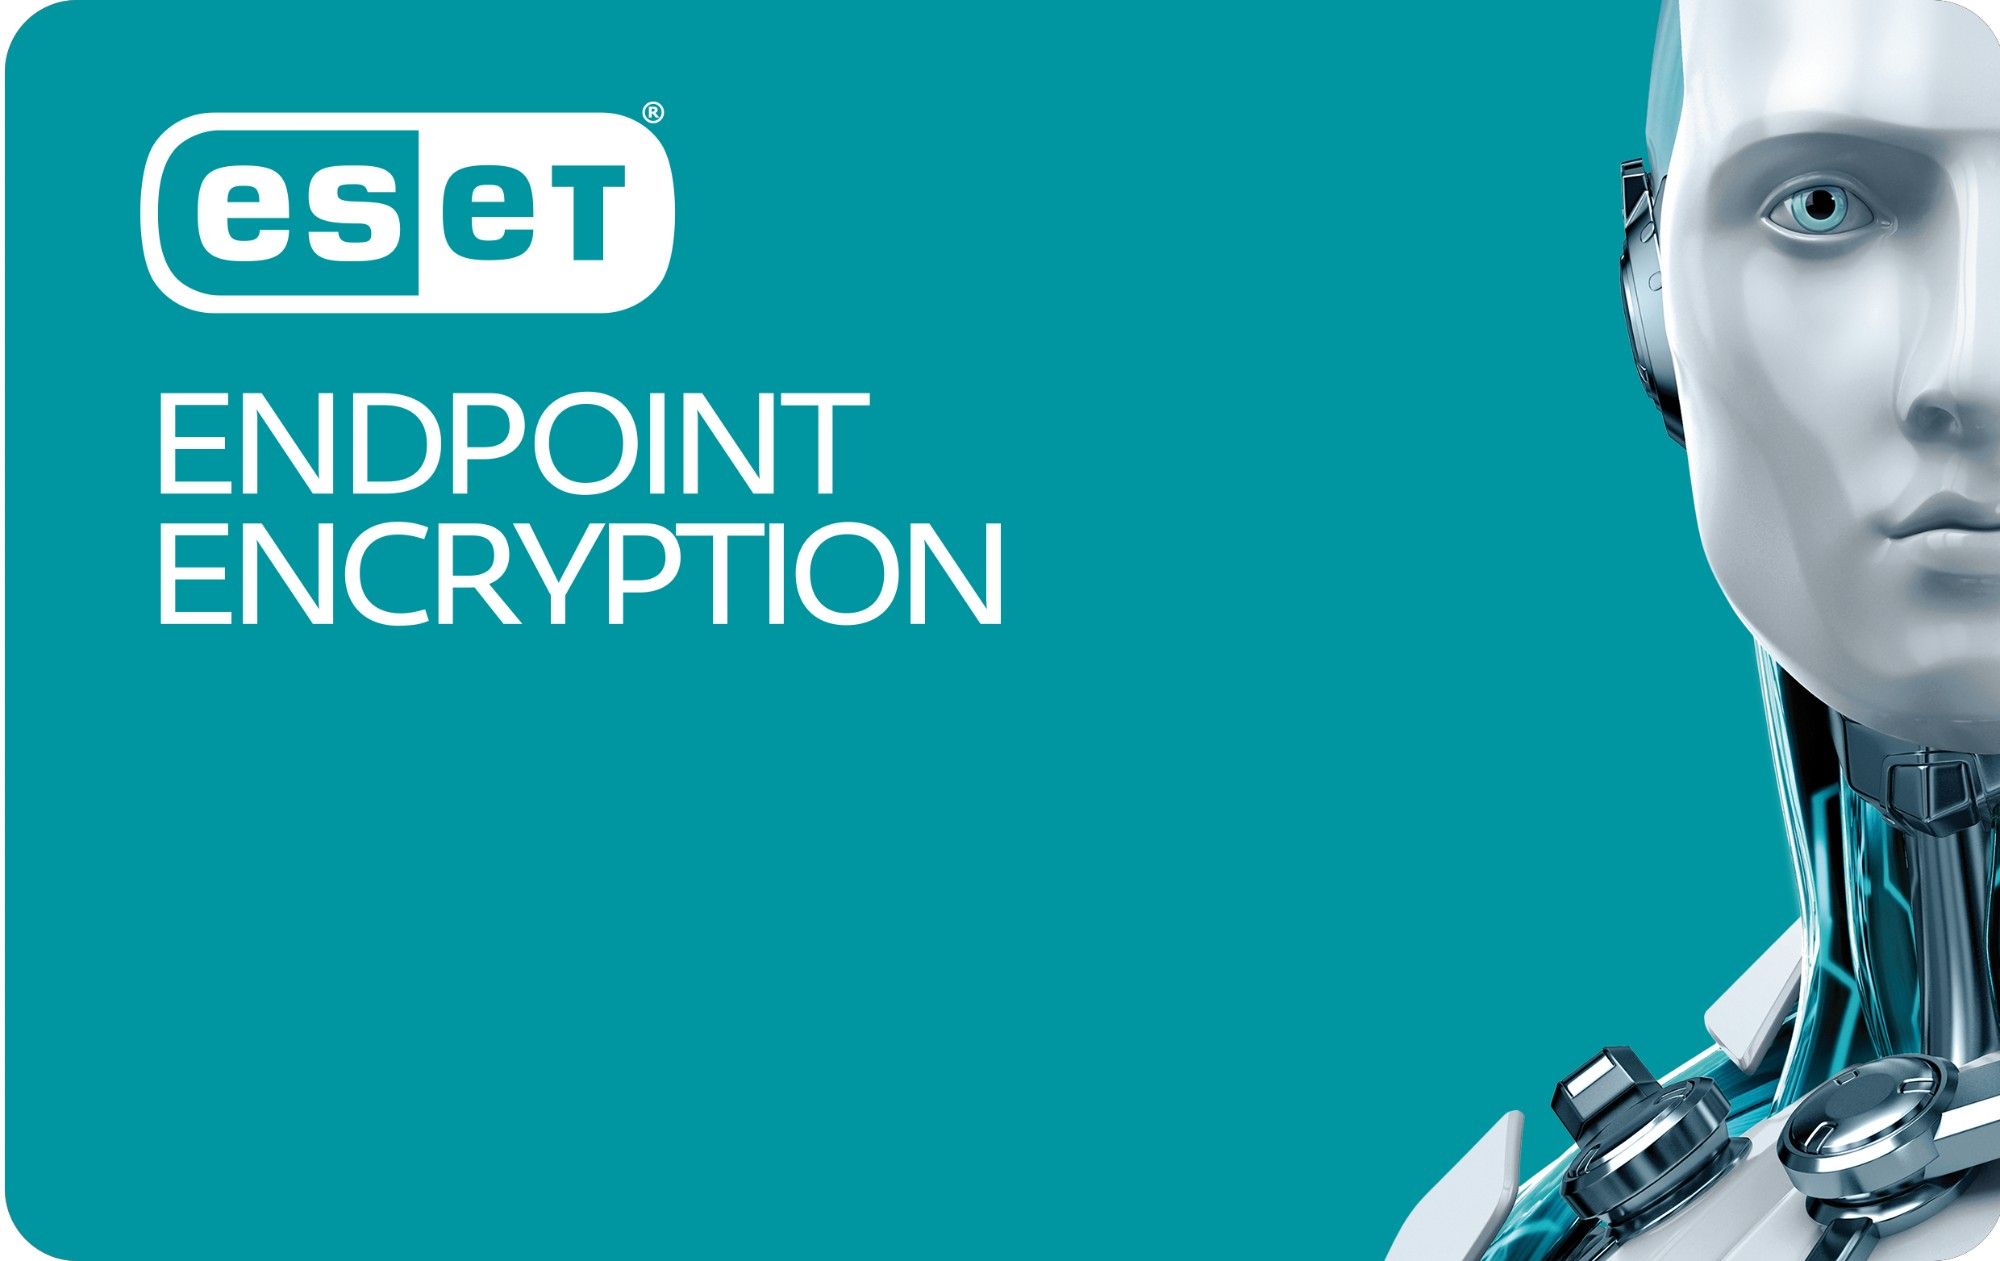 ESET Endpoint Encryption Pro 50 - 99 User Government (GOV) license 50 - 99 license(s) 2 year(s)